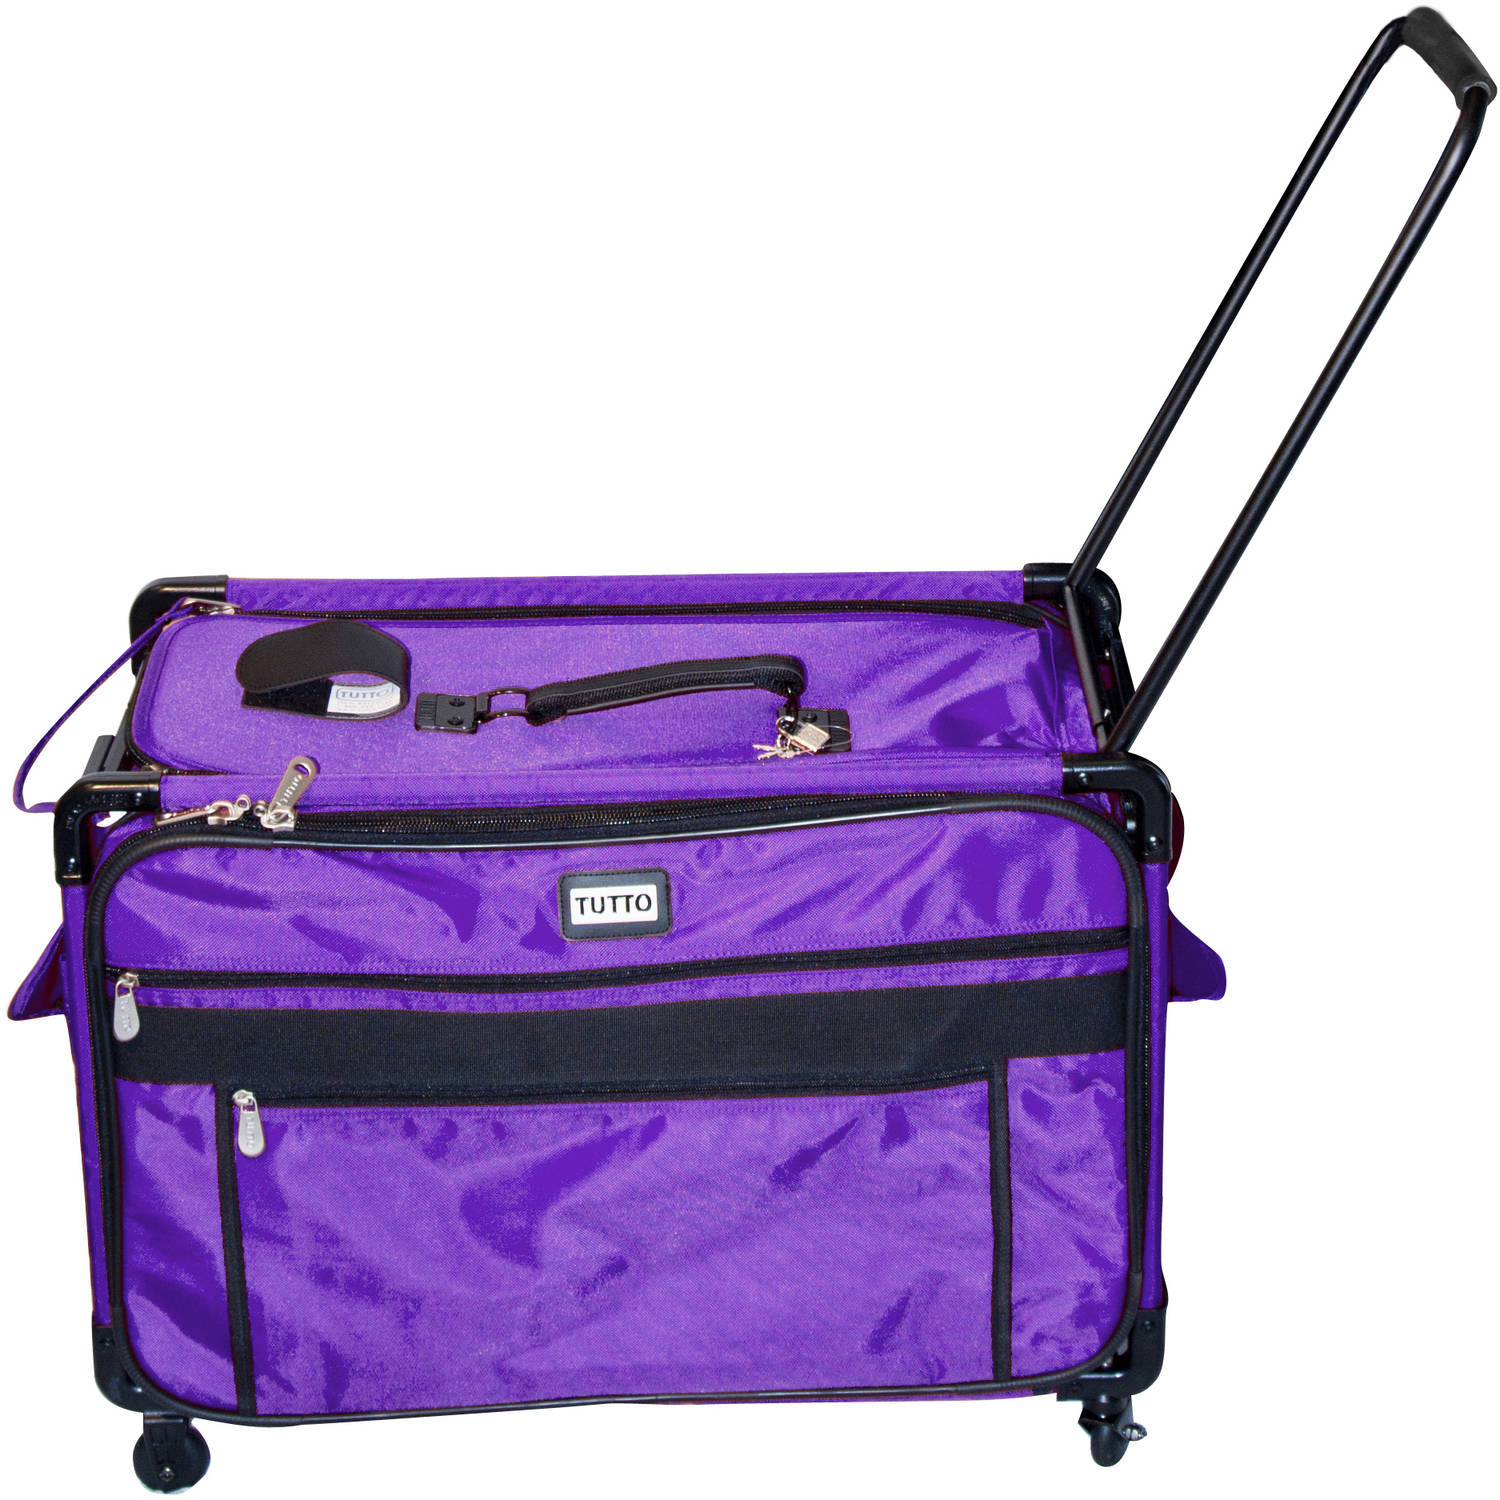 TUTTO Machine on Wheels 2XL Nylon Tote Bag, Purple